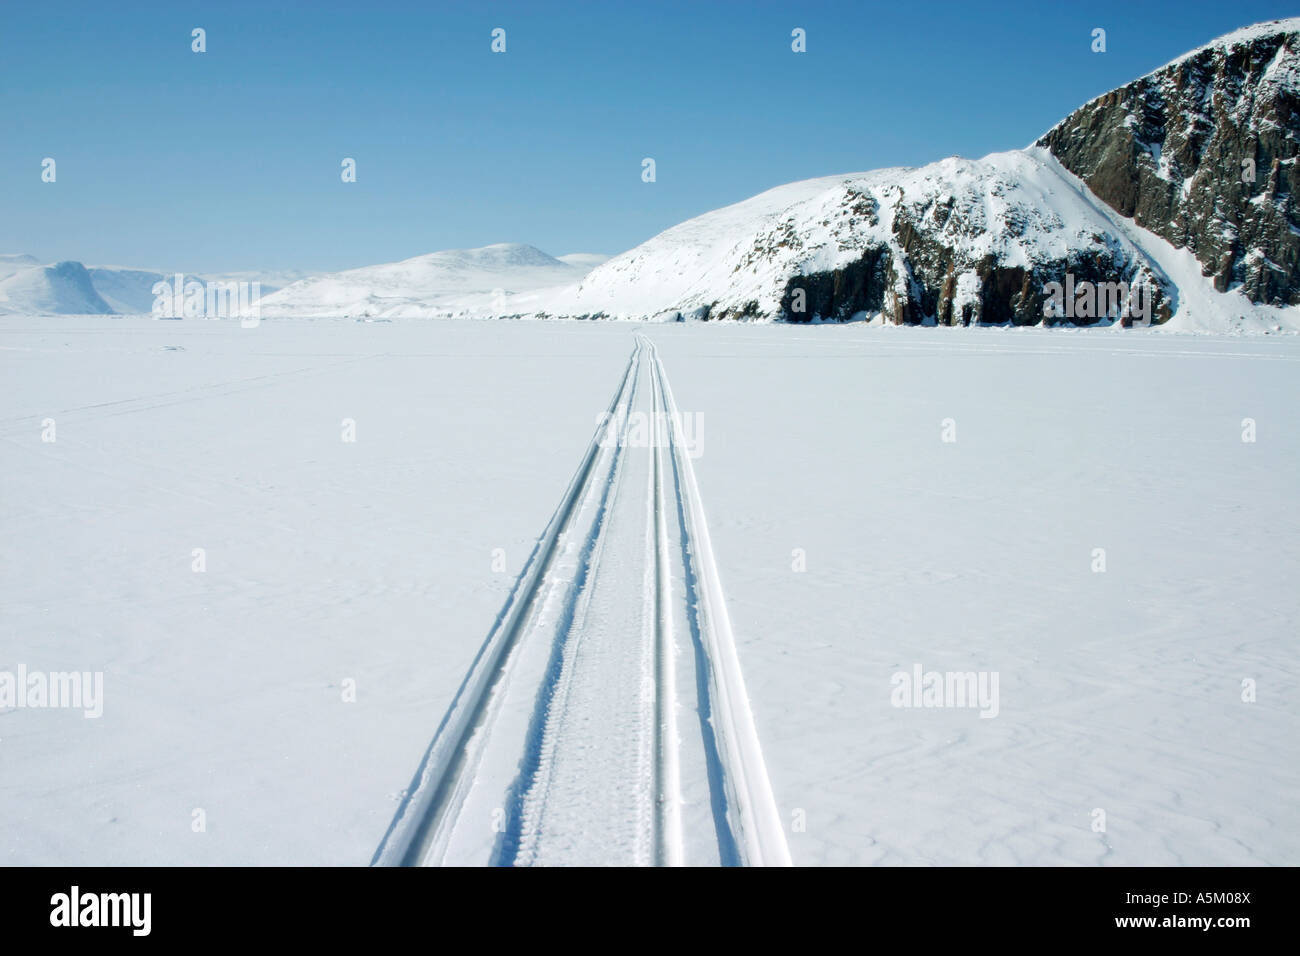 Snowmobile tracks on sea ice with snow covered hills behind, near the Inuit community of Qikitarjuaq on Baffin Island - Stock Image